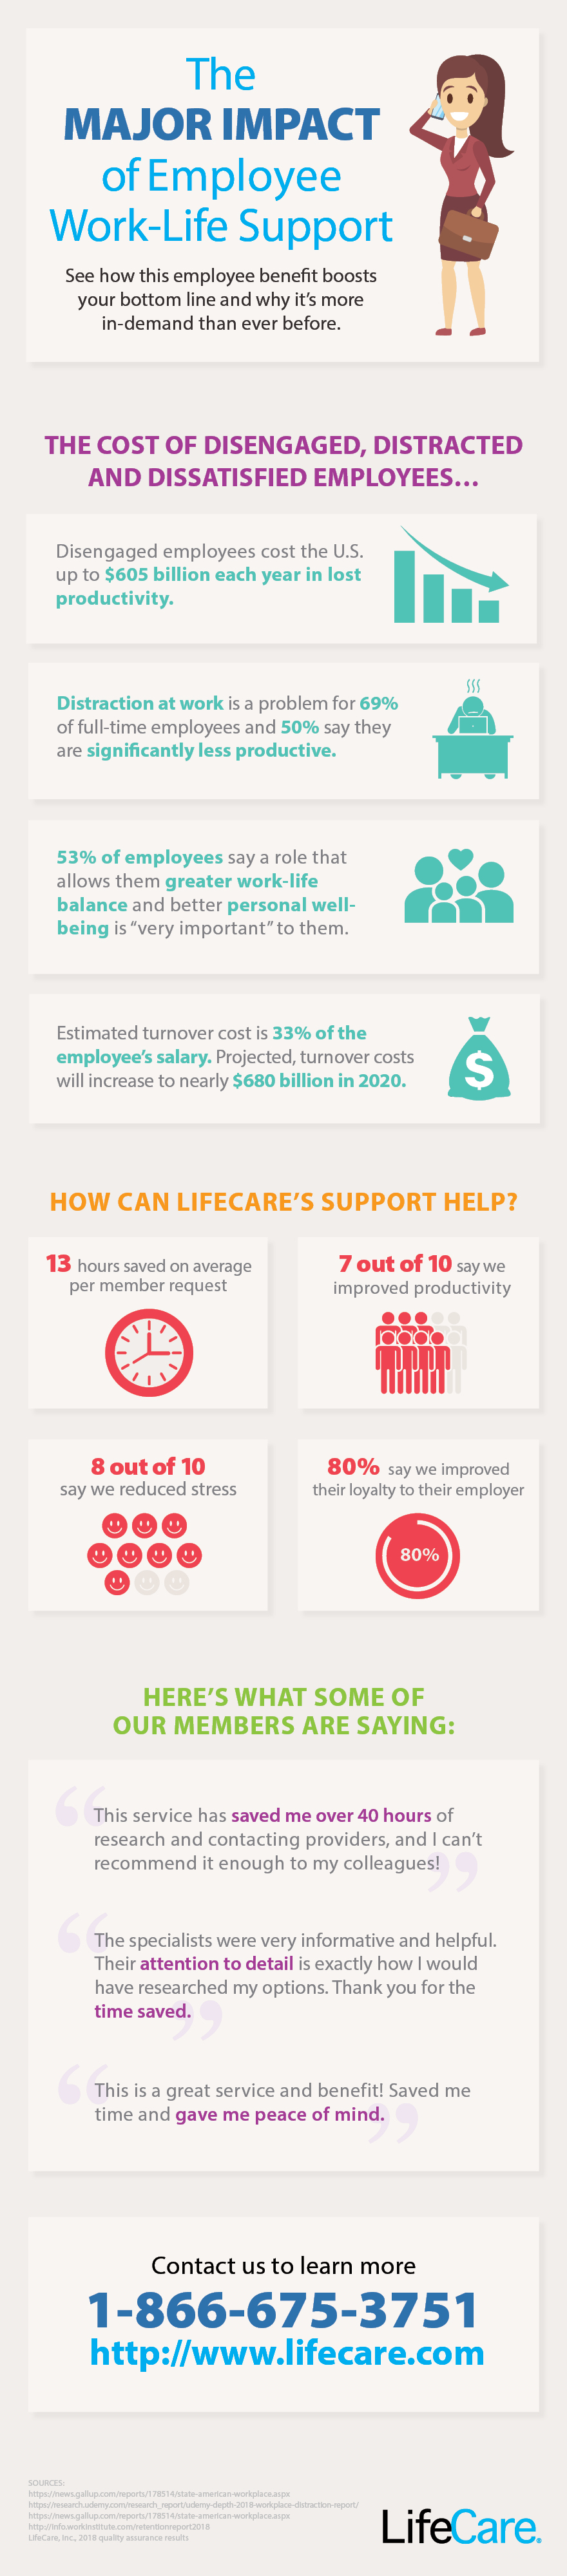 The Major Impact of Employee Work-Life Support